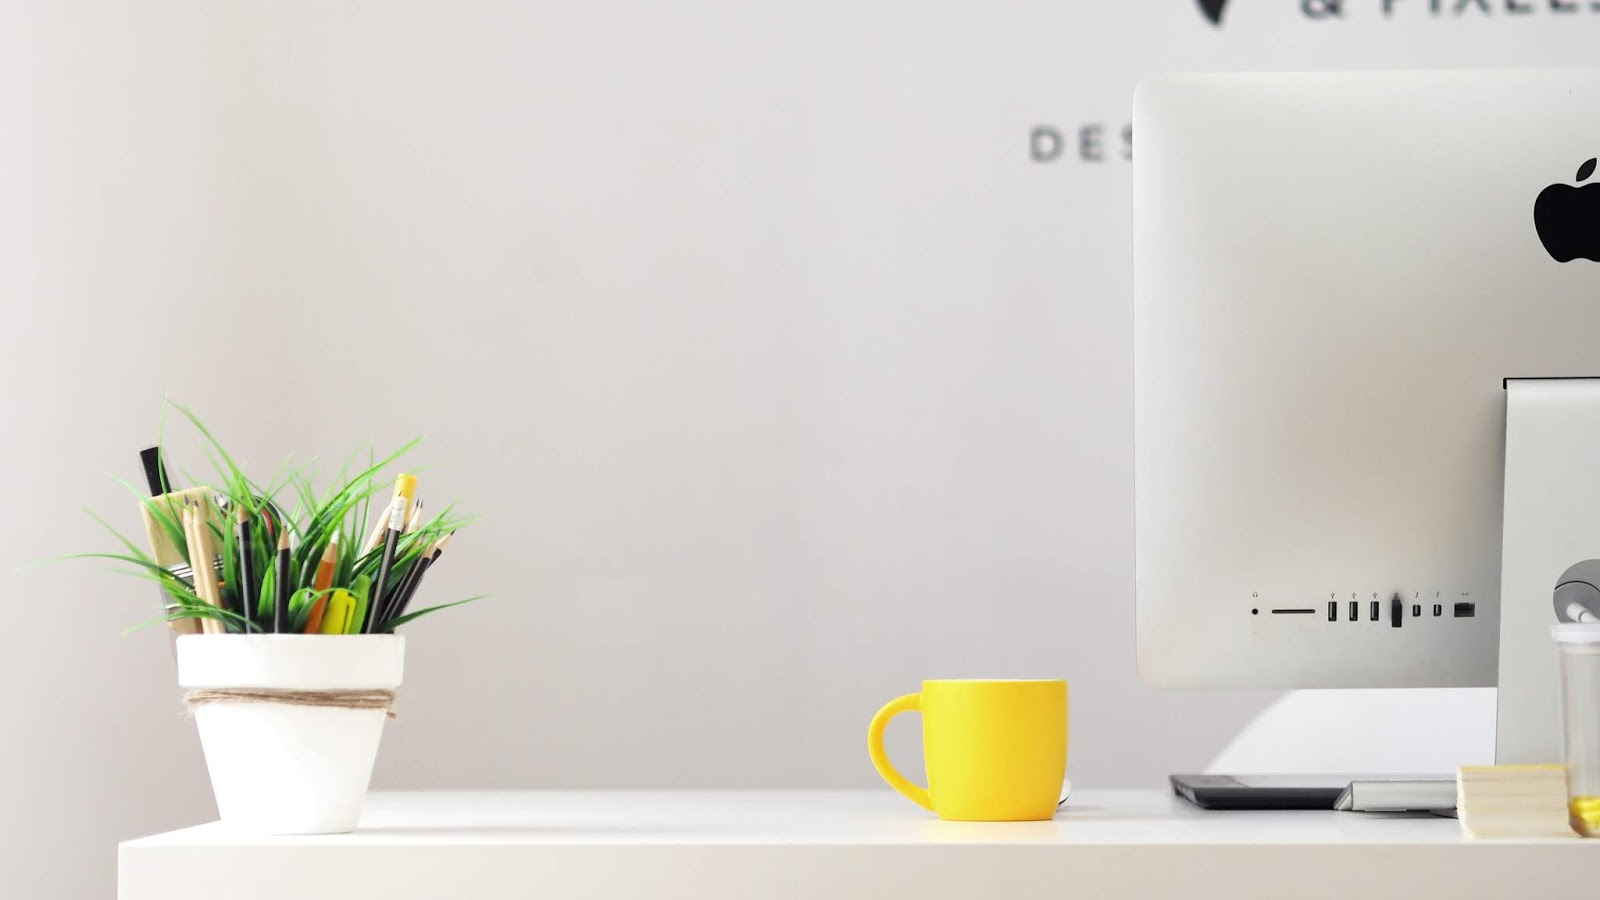 How to improve your small business website